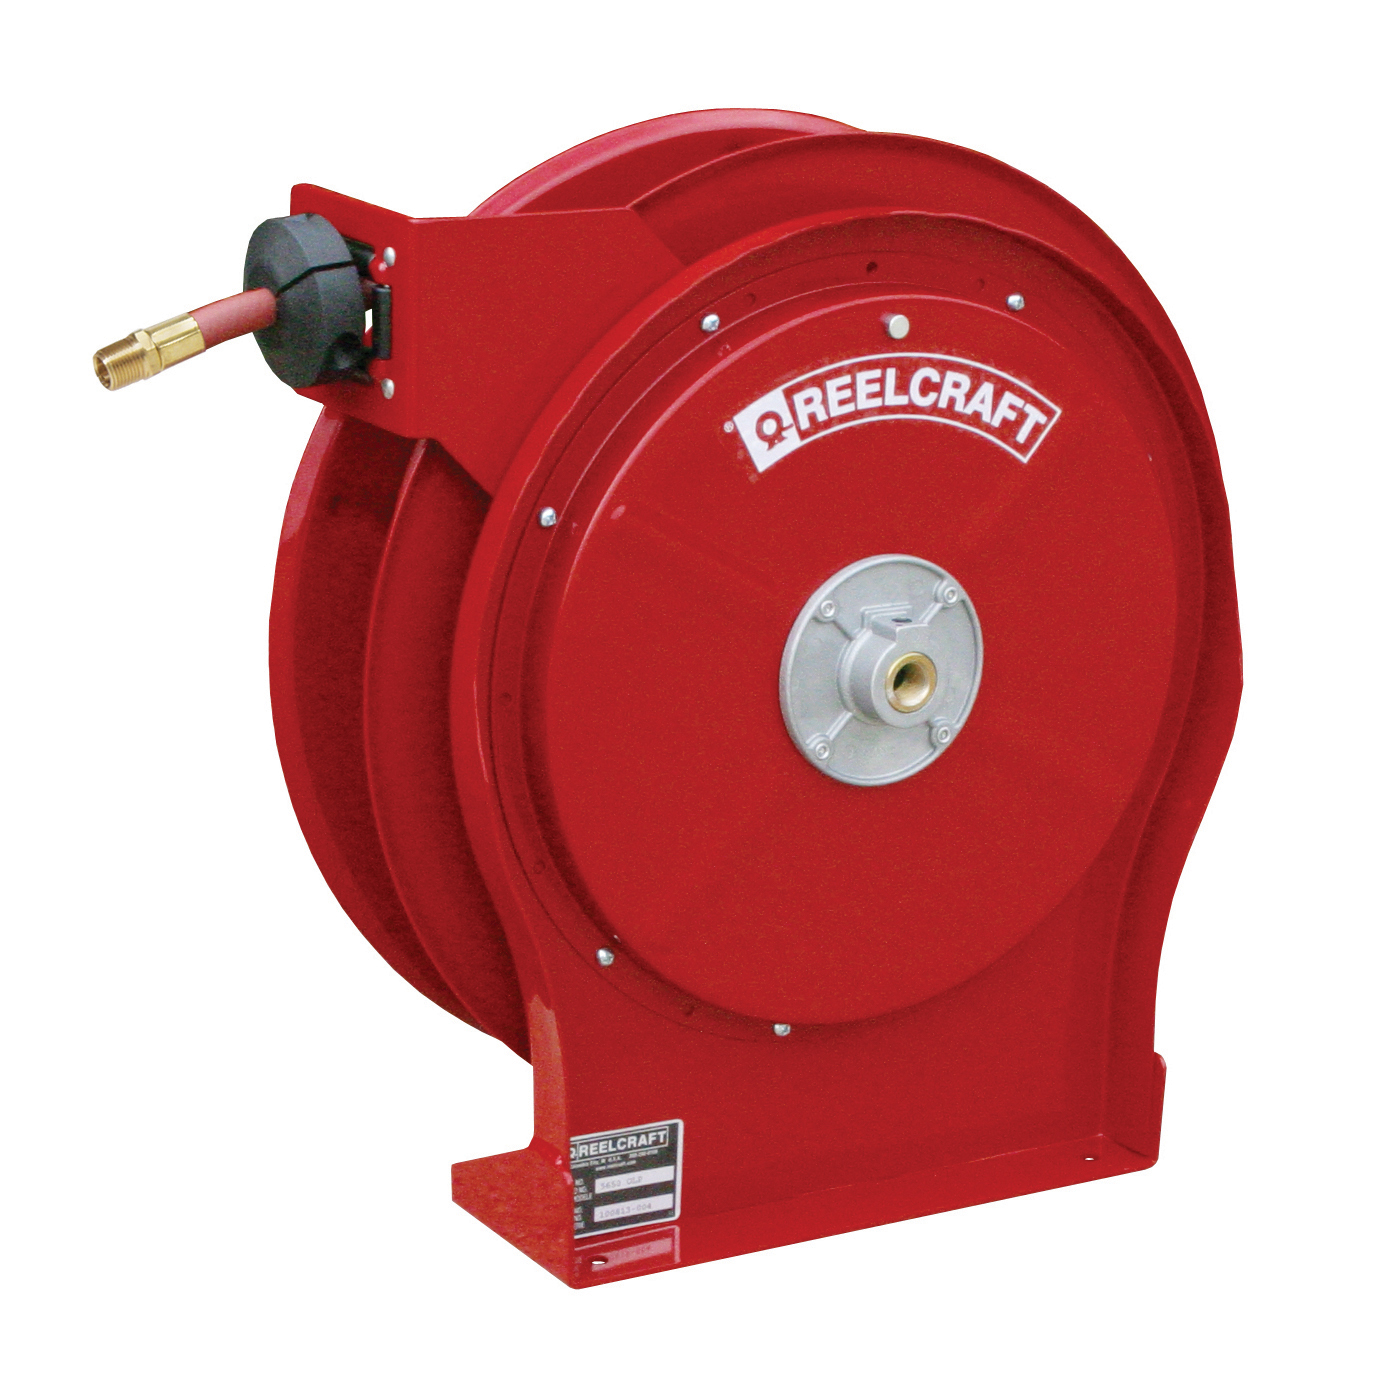 Reelcraft® 7850 OLP 7000 Heavy Duty Low Pressure Hose Reel With Hose, 1/2 in ID x 3/4 in OD x 50 ft L Hose, 300 psi Pressure, 19-3/4 in Dia x 3-7/8 in W Reel, Domestic